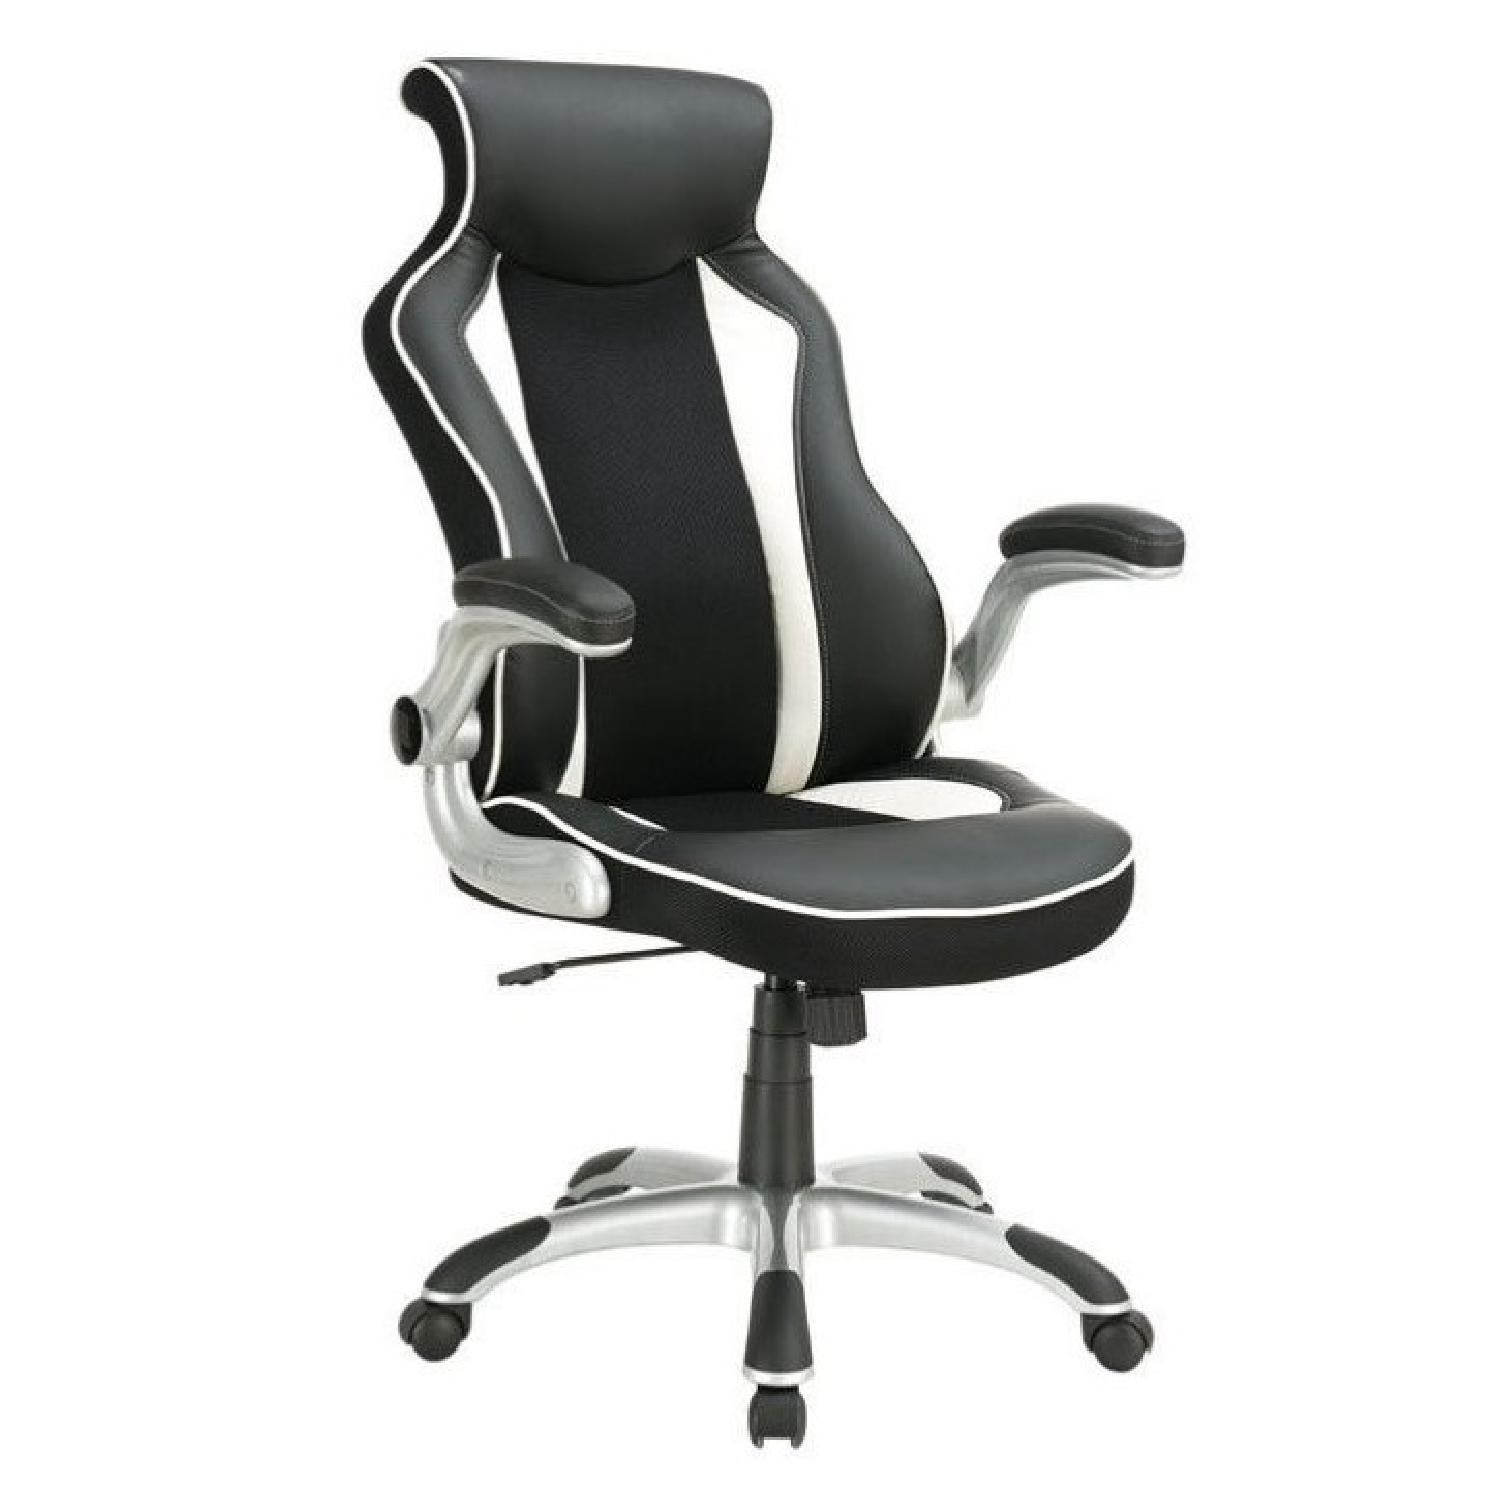 race car seat style modern ergonomic office chair in aptdeco. Black Bedroom Furniture Sets. Home Design Ideas